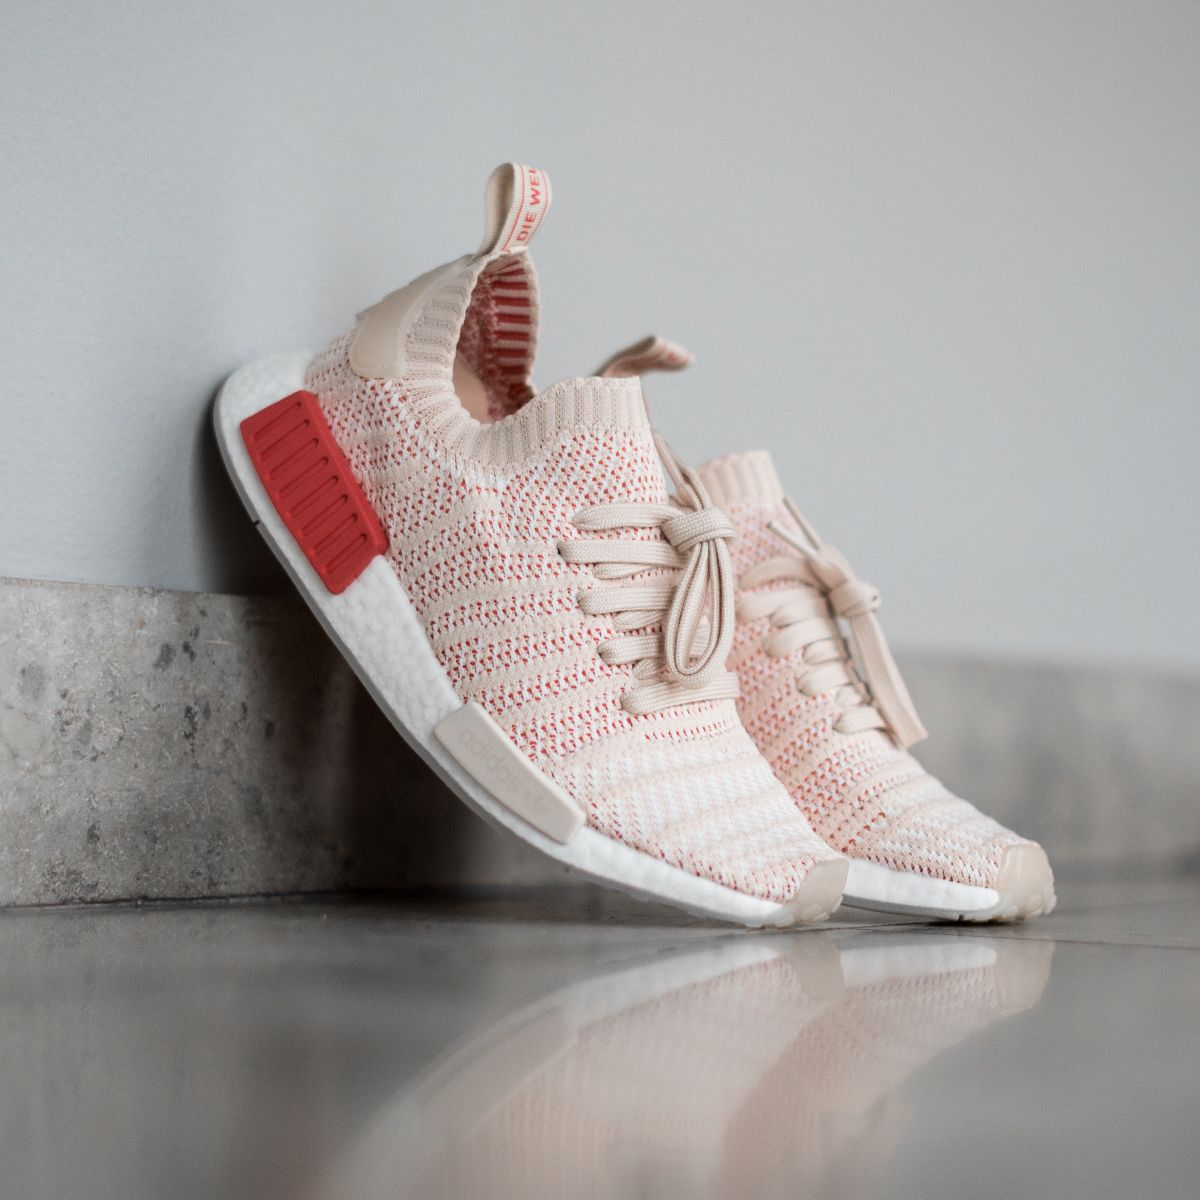 Available for now! Get the next generation of NMDs for Available Ladies, the 3f215a